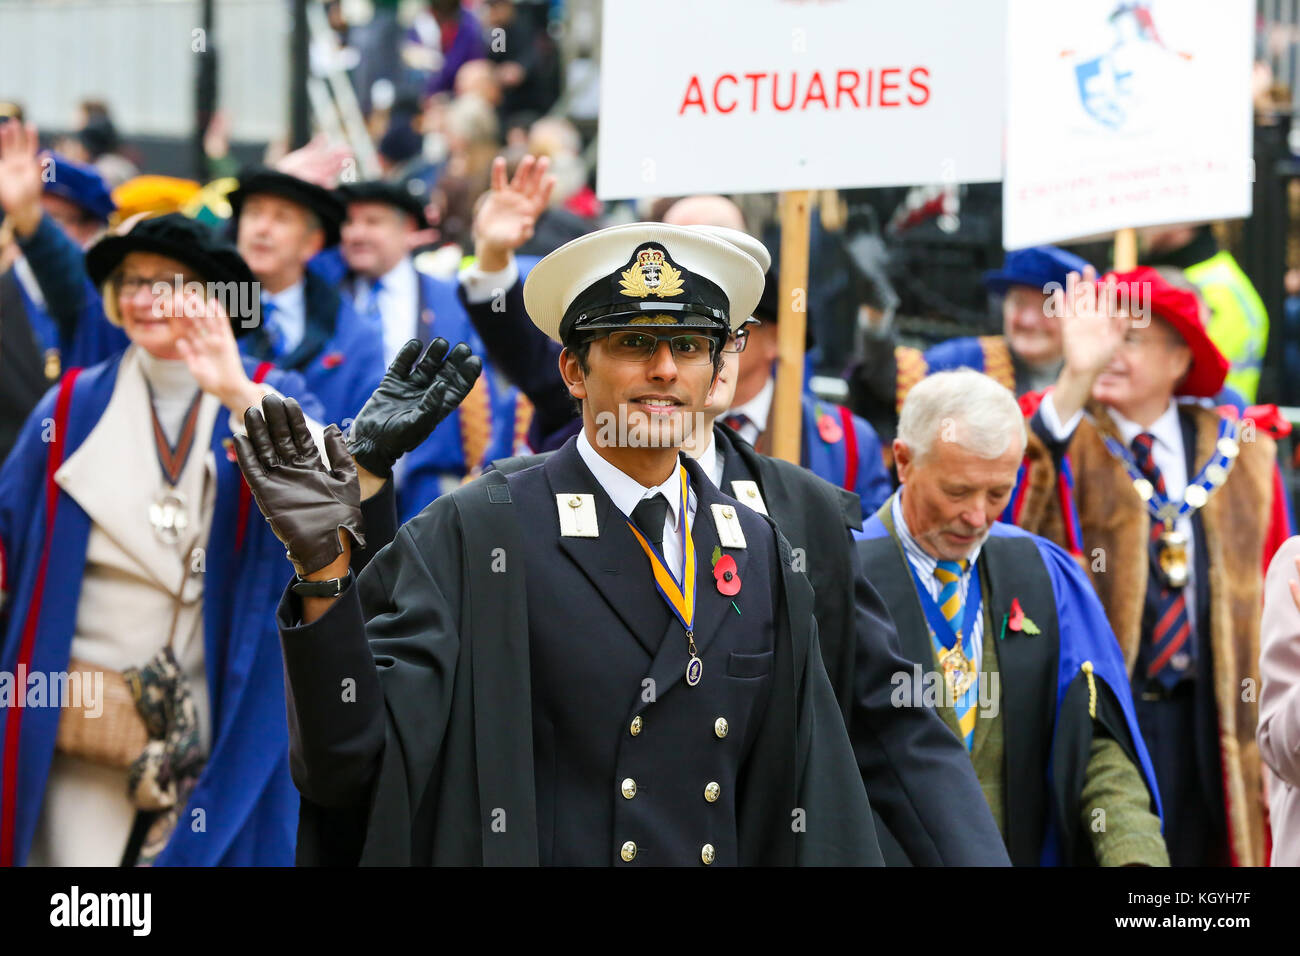 St Paul's Cathedral. London. UK. 11 Nov 2017 - Participants of the Lord Mayor's Show parade walk past St - Stock Image